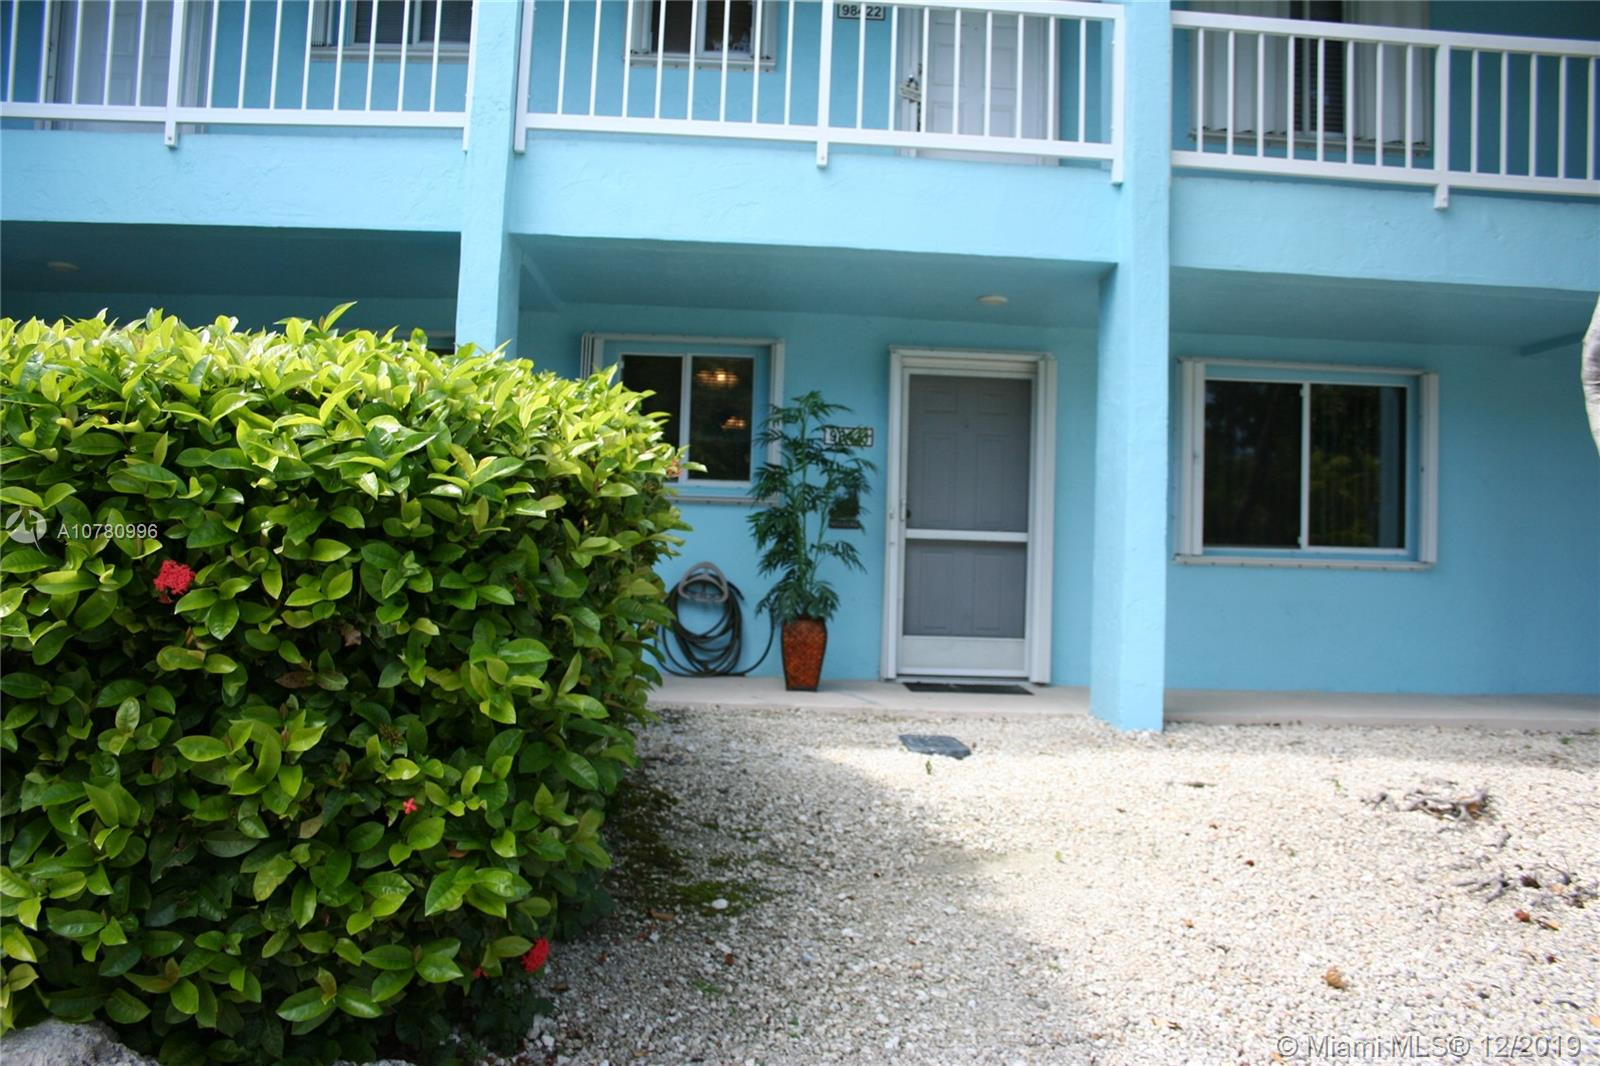 98421 Windward Avenue, Key Largo, FL 33037 - Key Largo, FL real estate listing